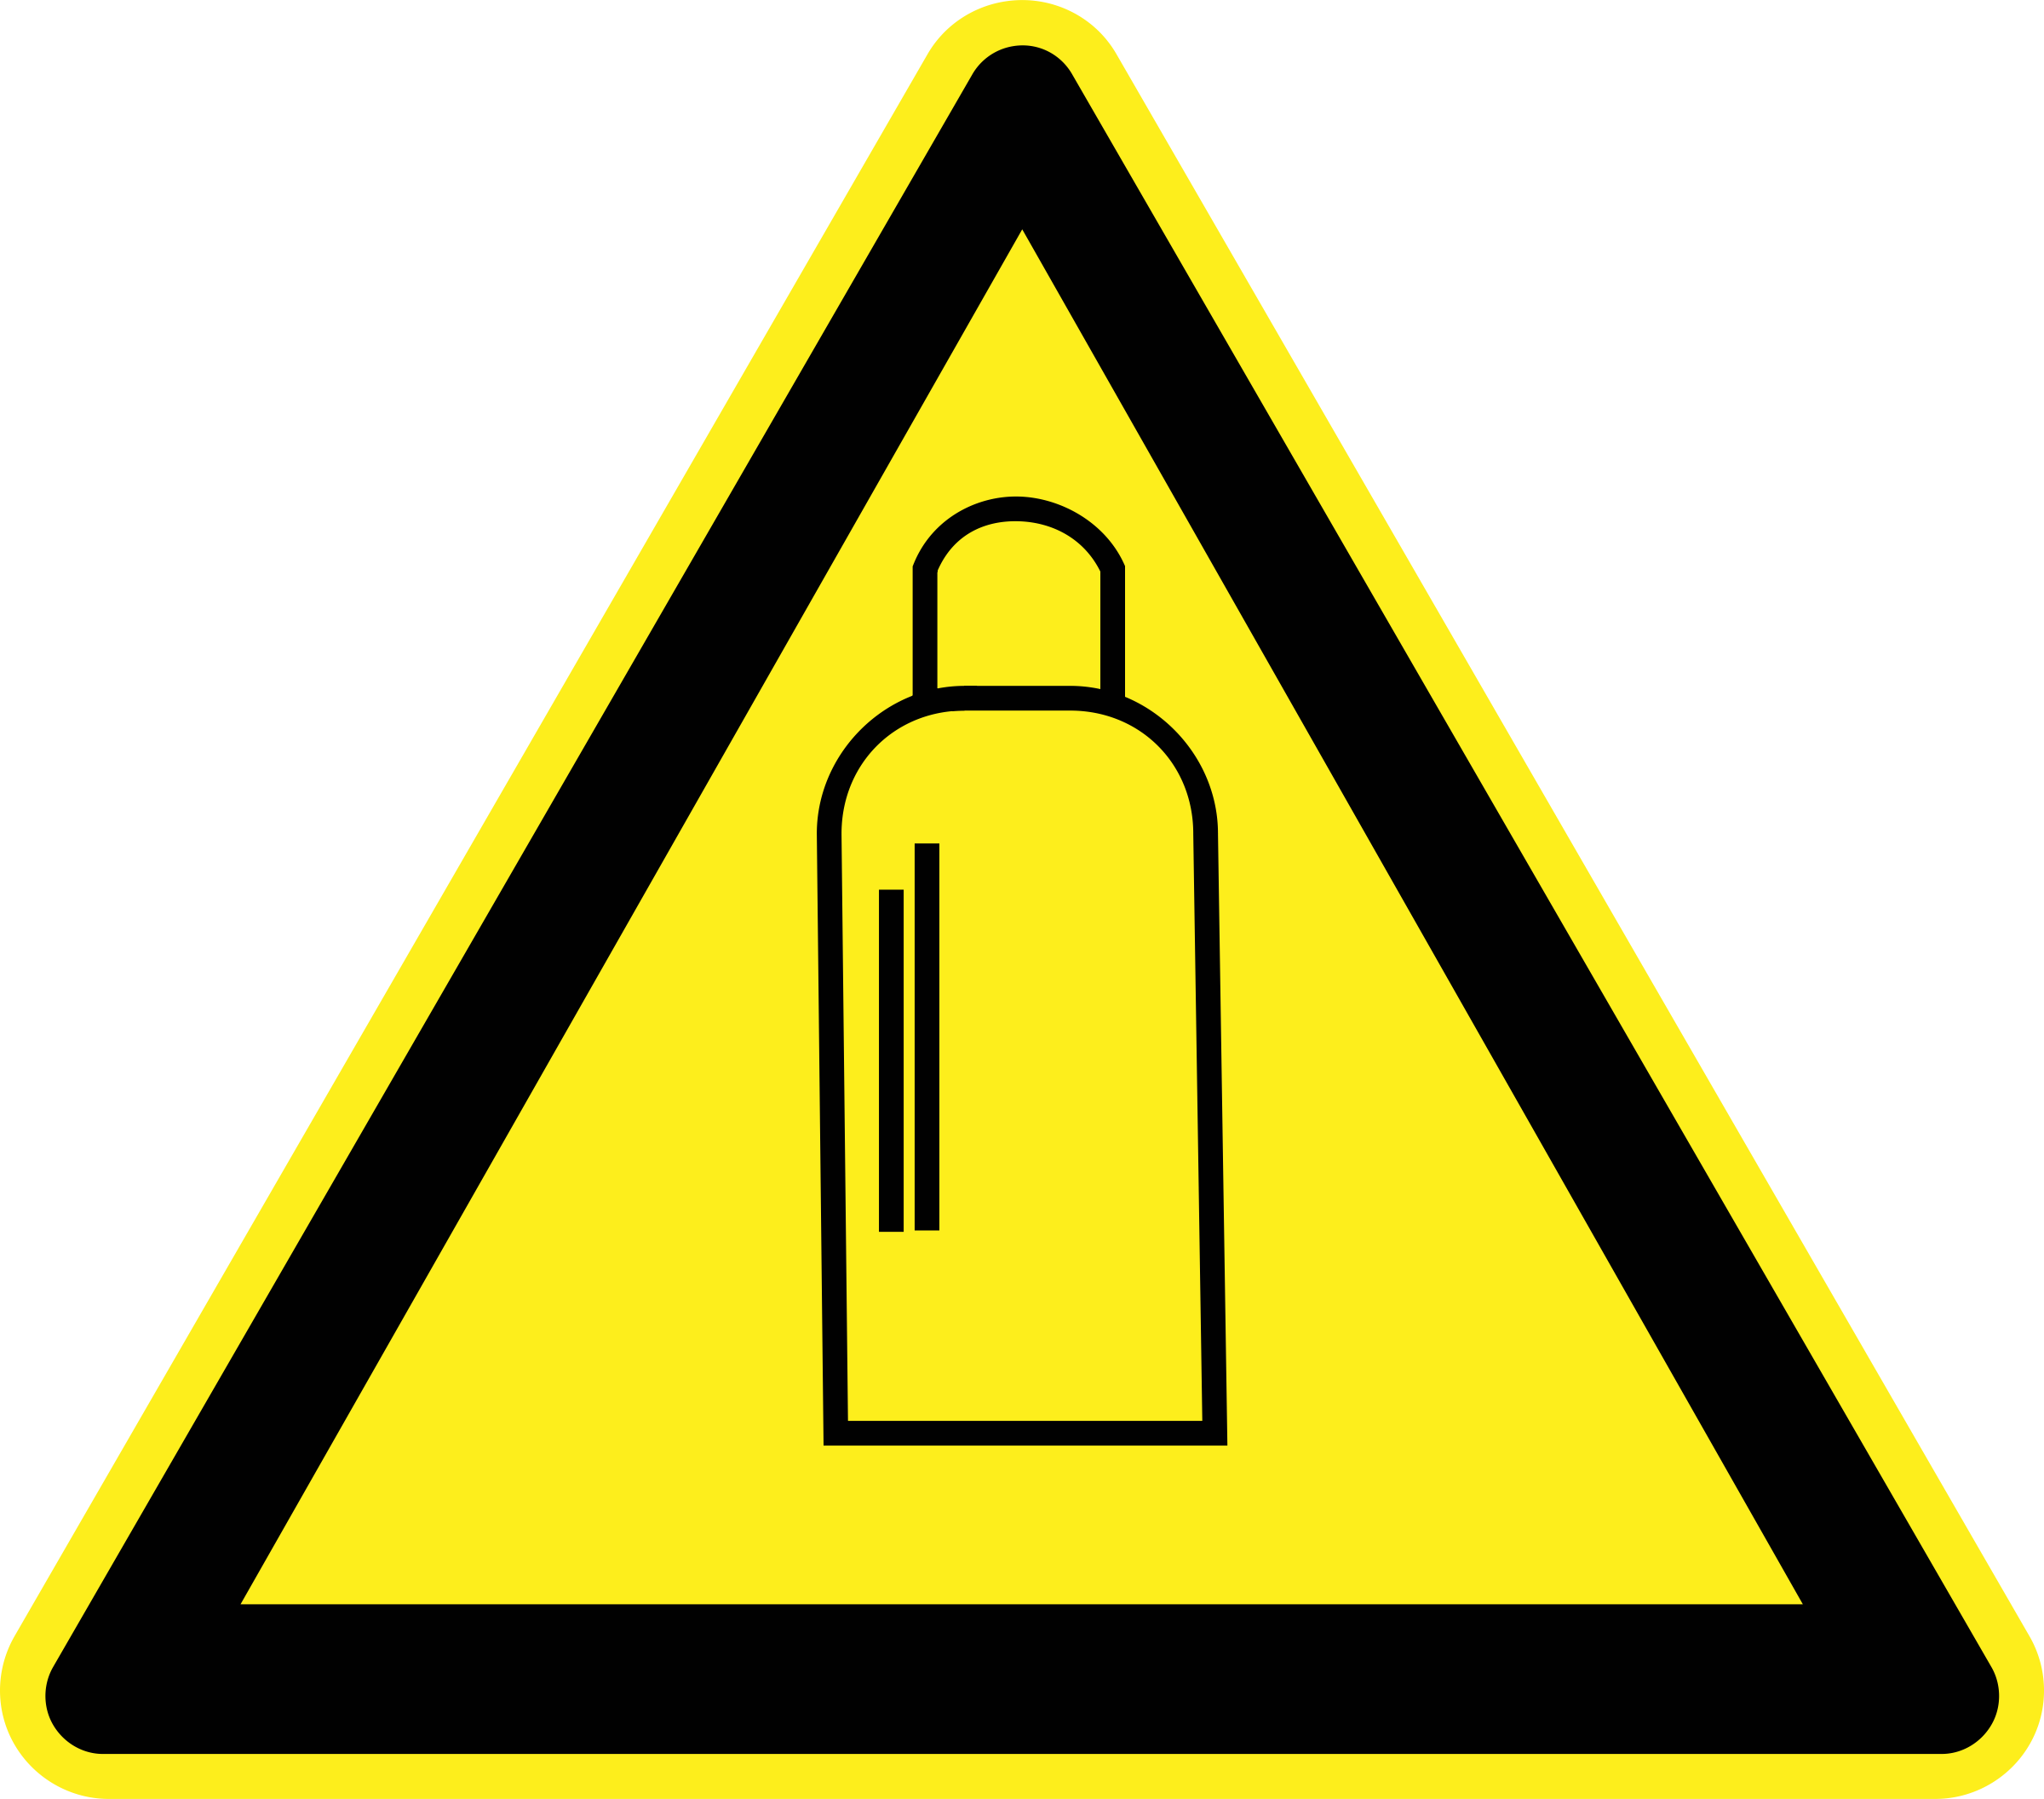 Gas Cylinders Warning Sign by h0us3s